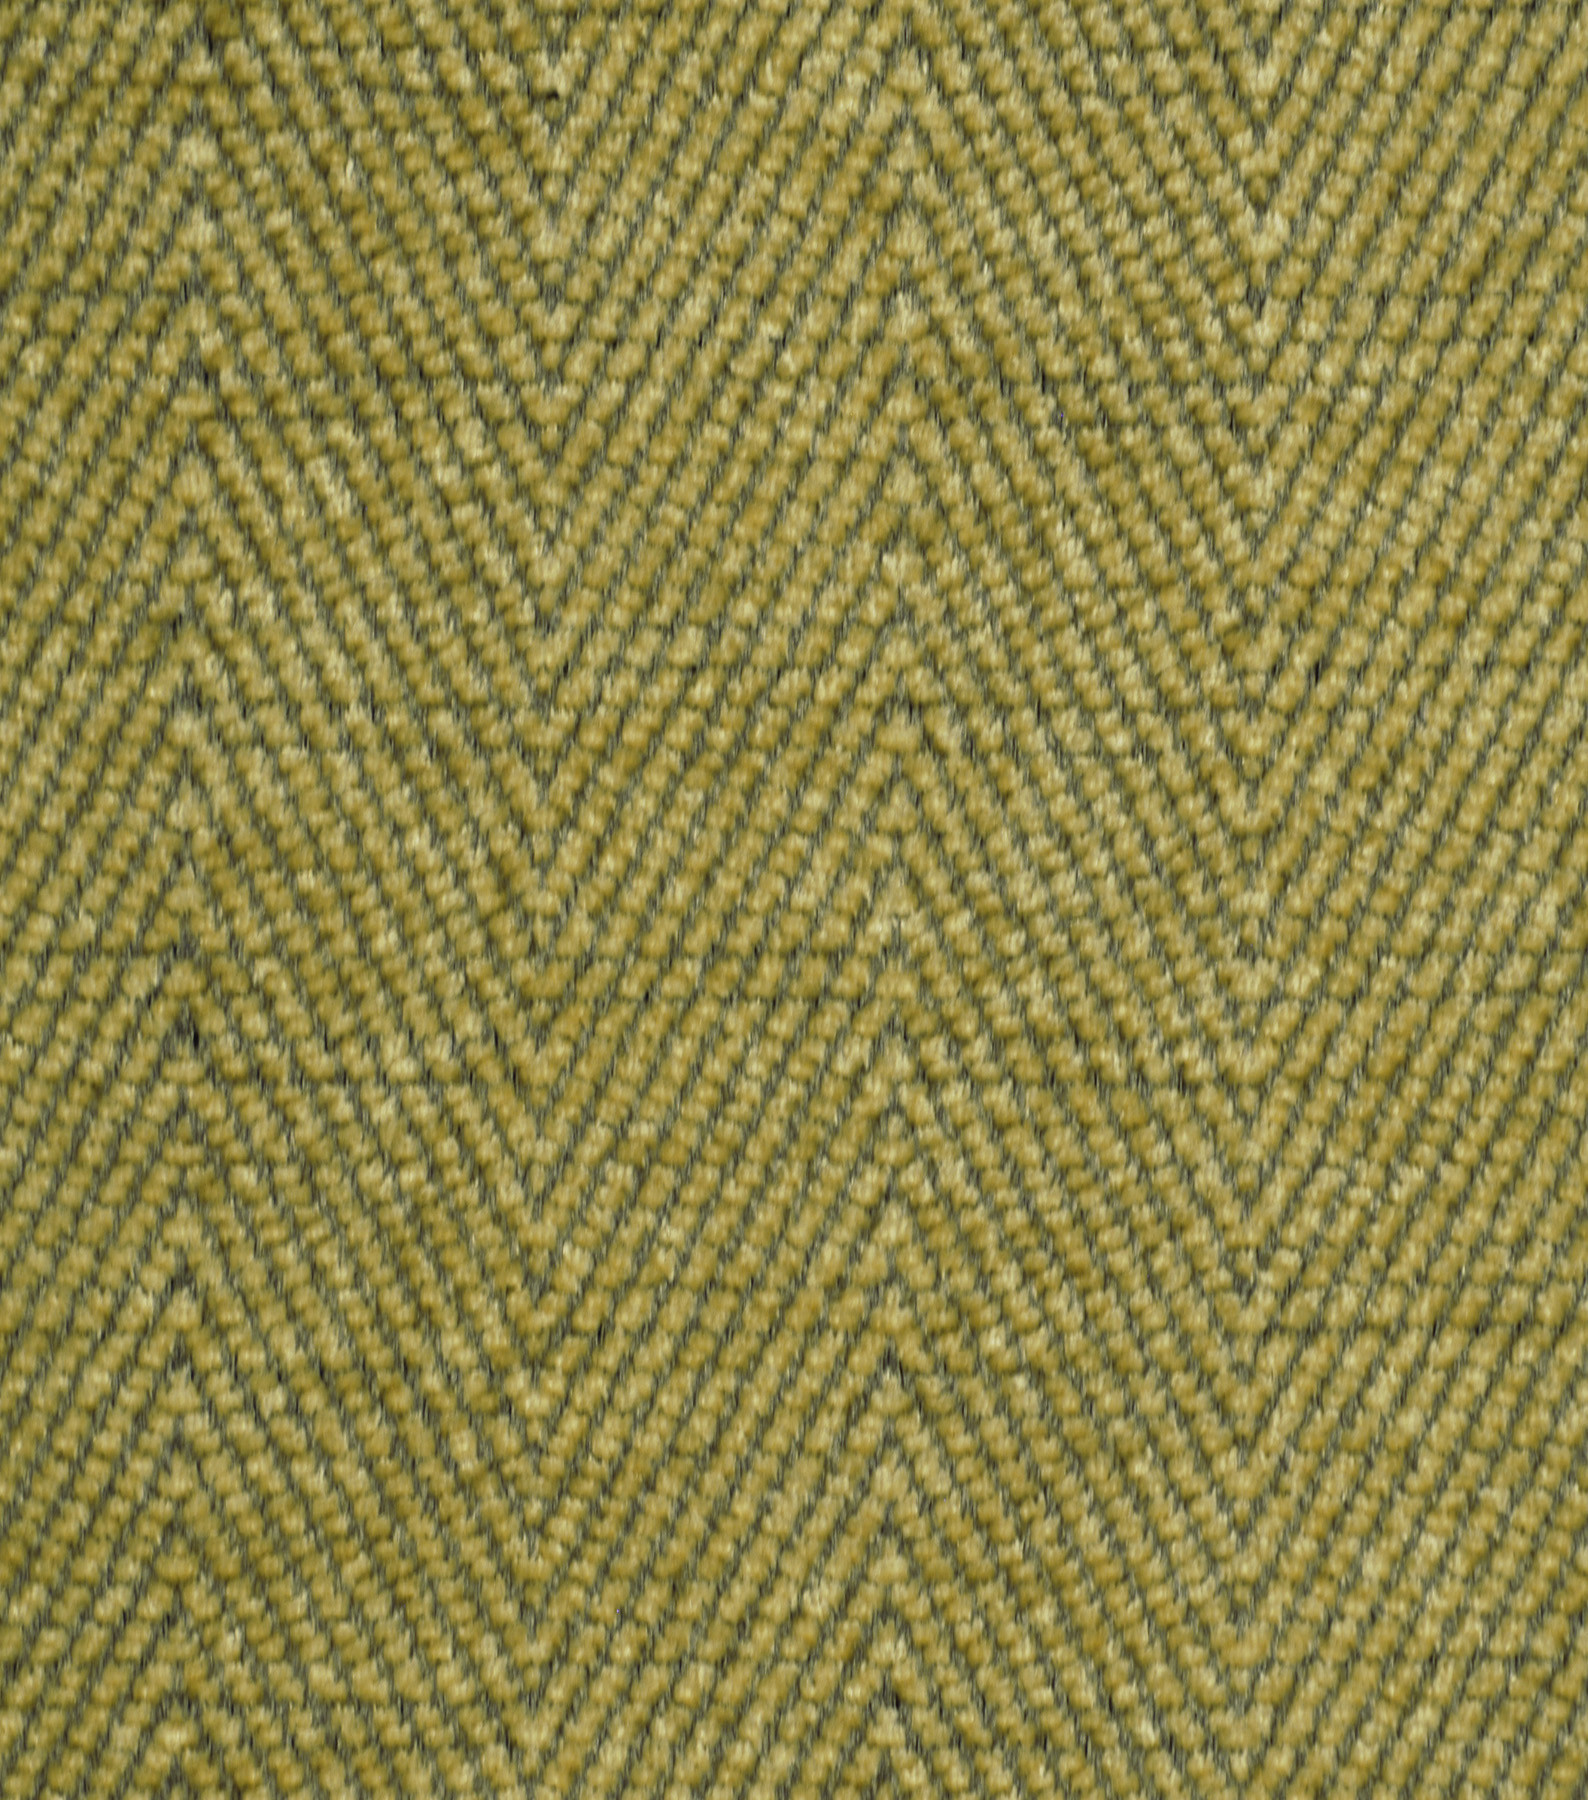 Home Decor 8\u0022x8\u0022 Fabric Swatch-Signature Series Sweater Fools Gold